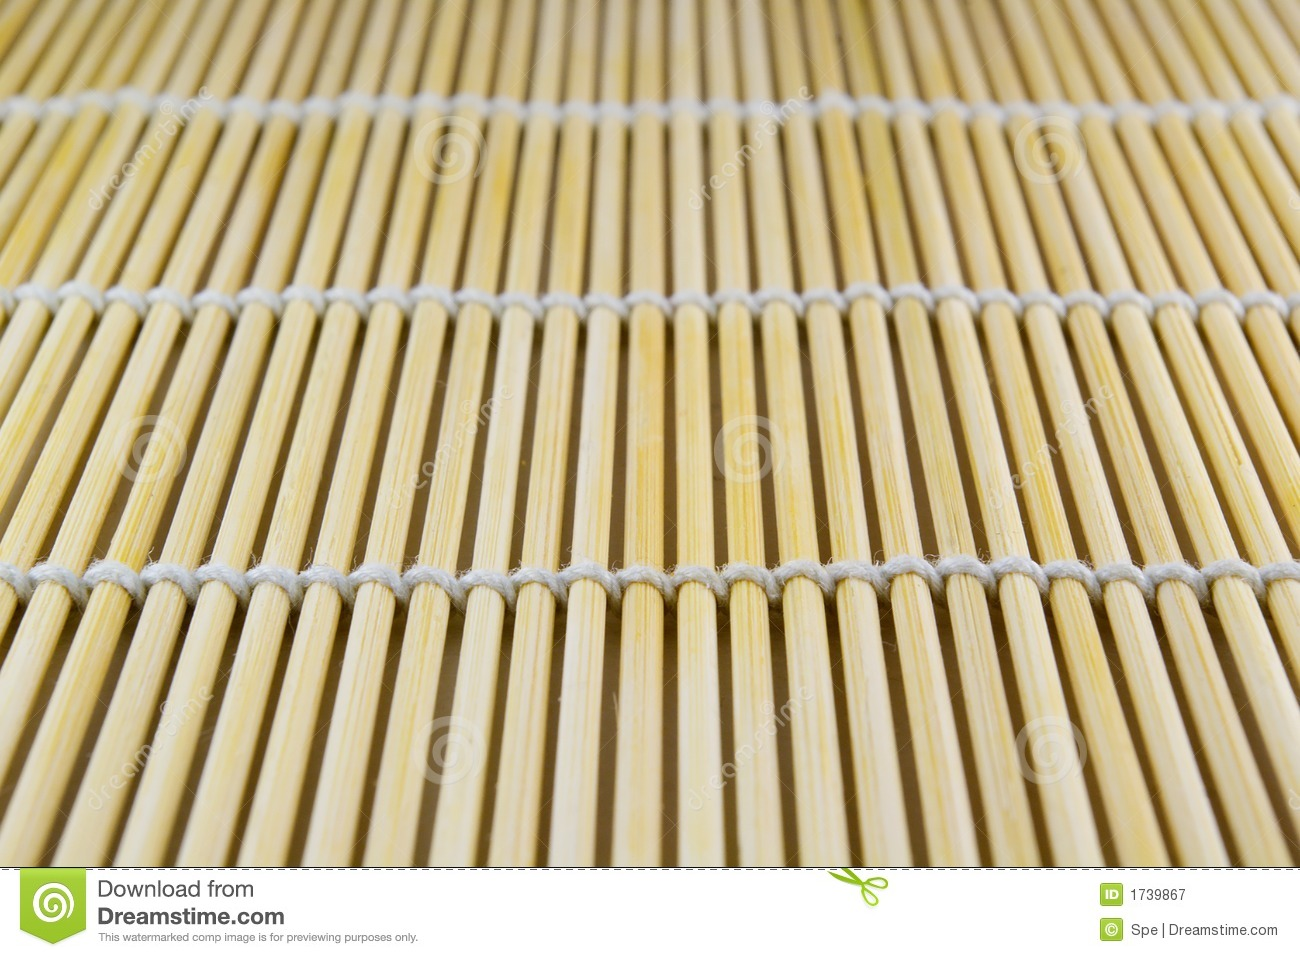 Bamboo Sushi Mat Stock Image Image Of Striped Organic